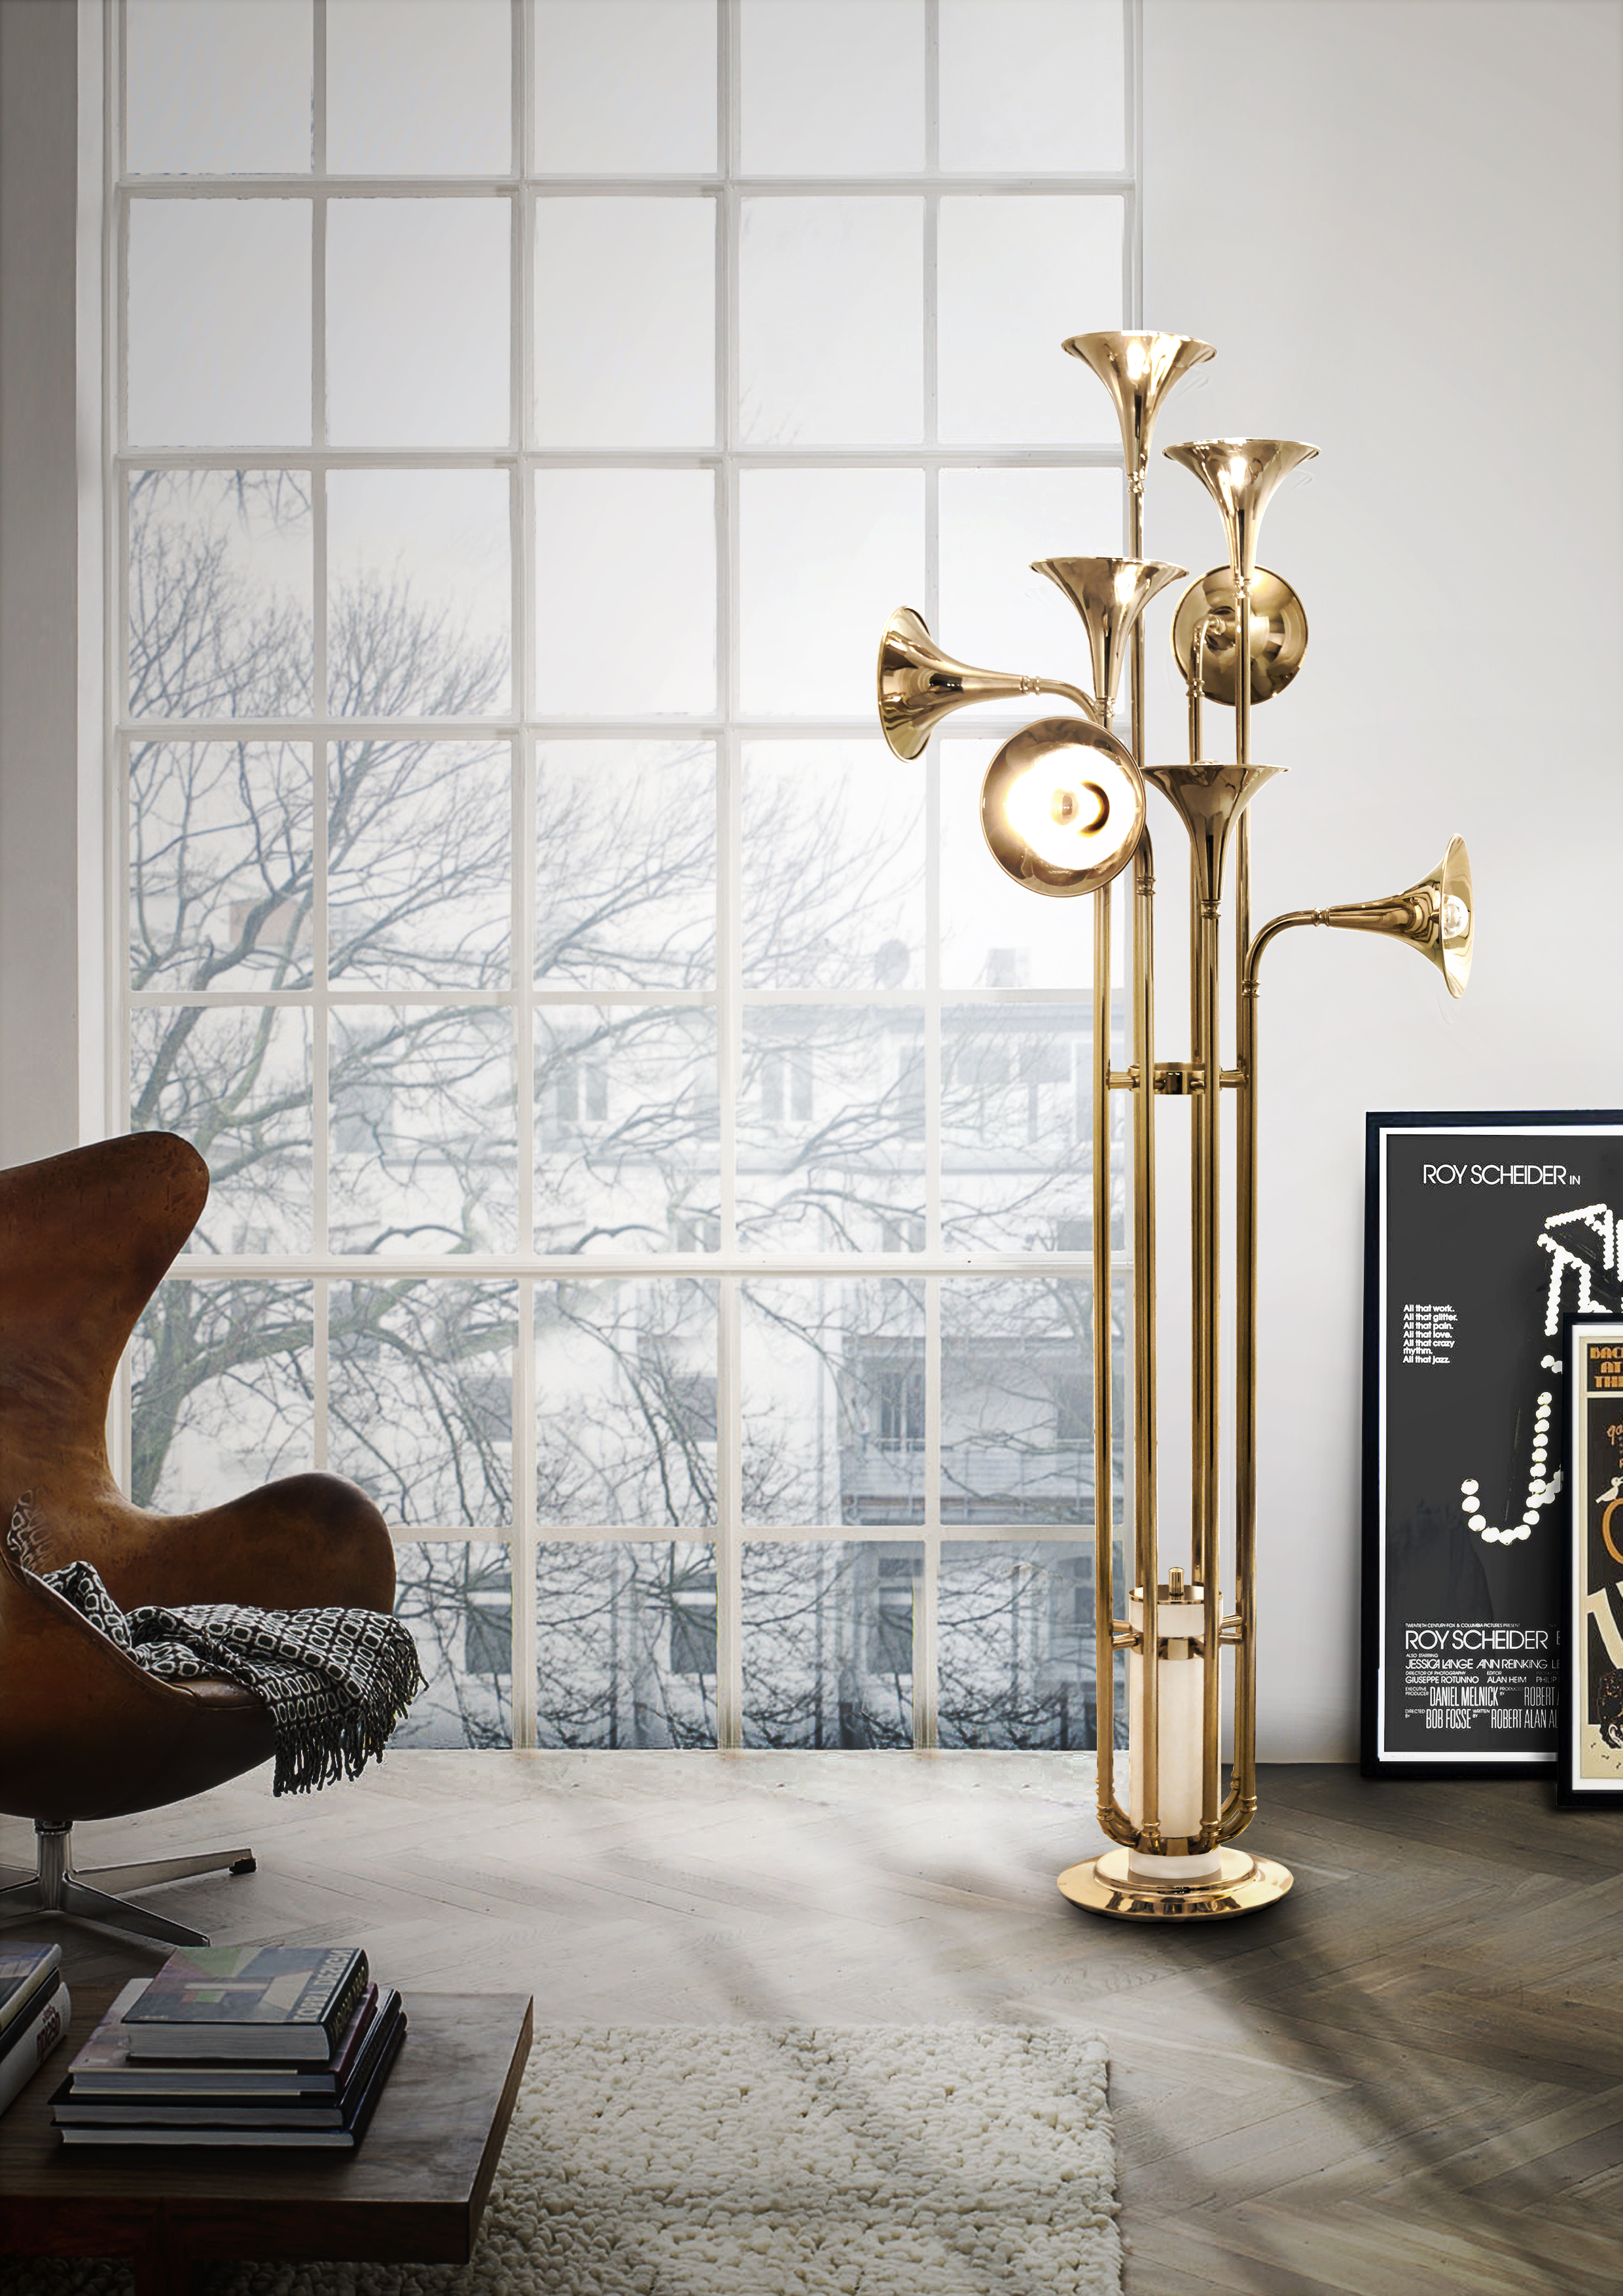 4 Modern Floor Lamps To Be Seen At 100% Design! modern floor lamps 4 Modern Floor Lamps To Be Seen At 100% Design! 4 Modern Floor Lamps To Be Seen At 100 Design 1